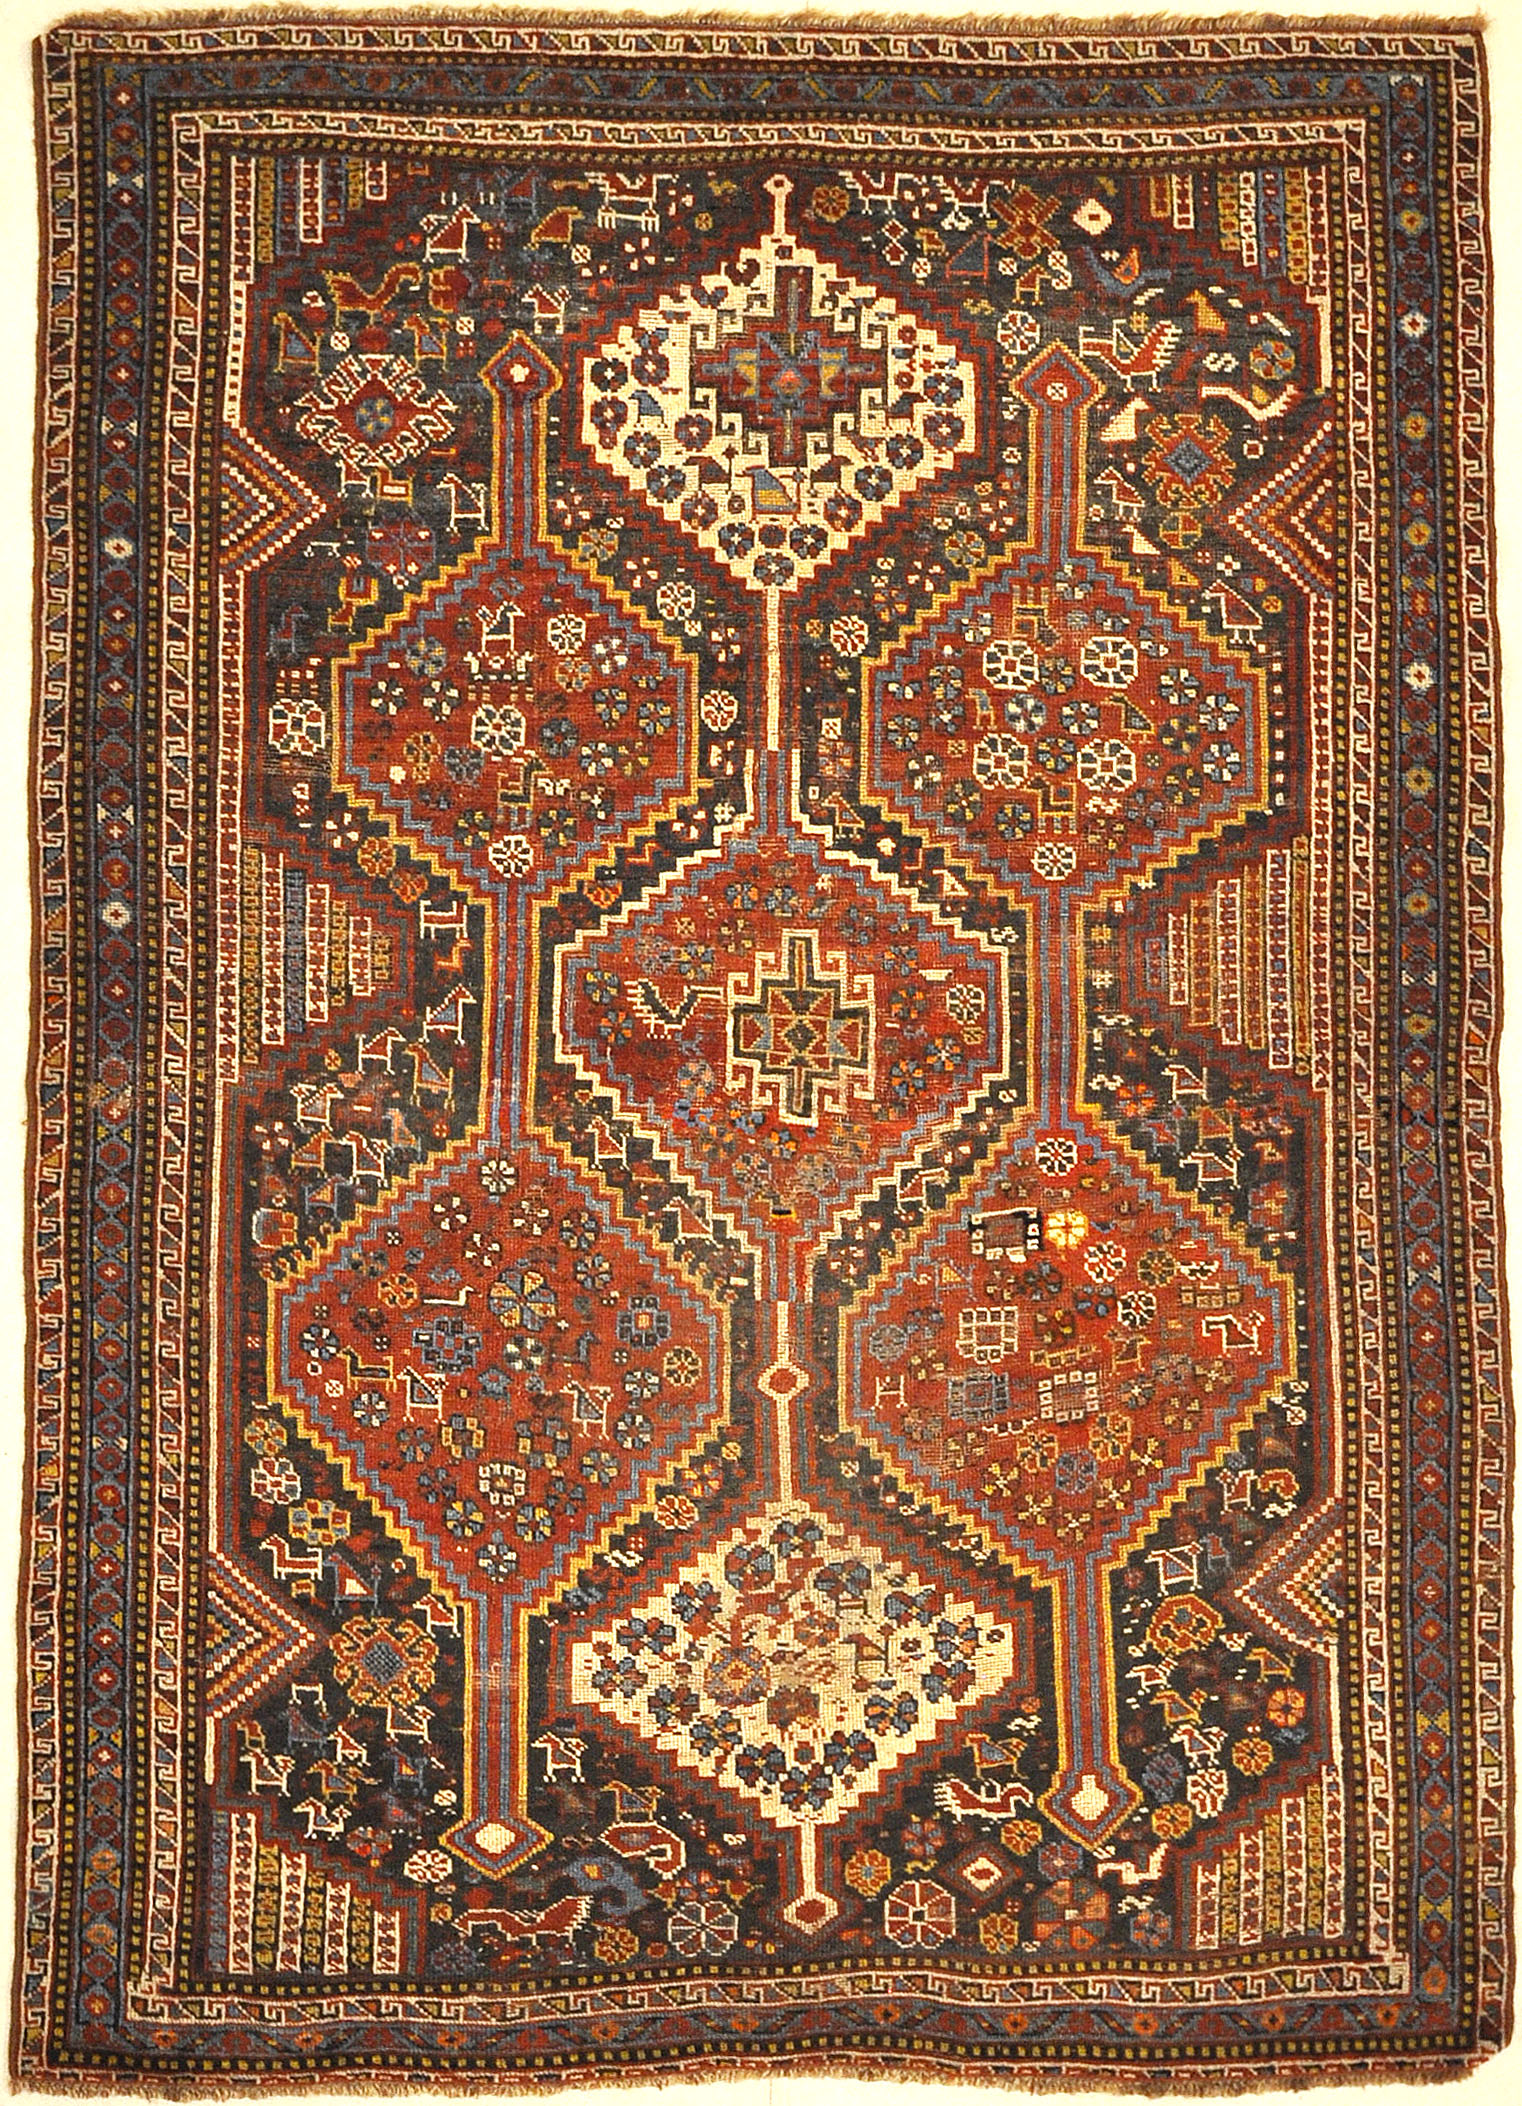 Antique Persian Khamseh Chicken Rug. A piece of genuine woven carpet art sold by Santa Barbara Design Center Rugs and More.